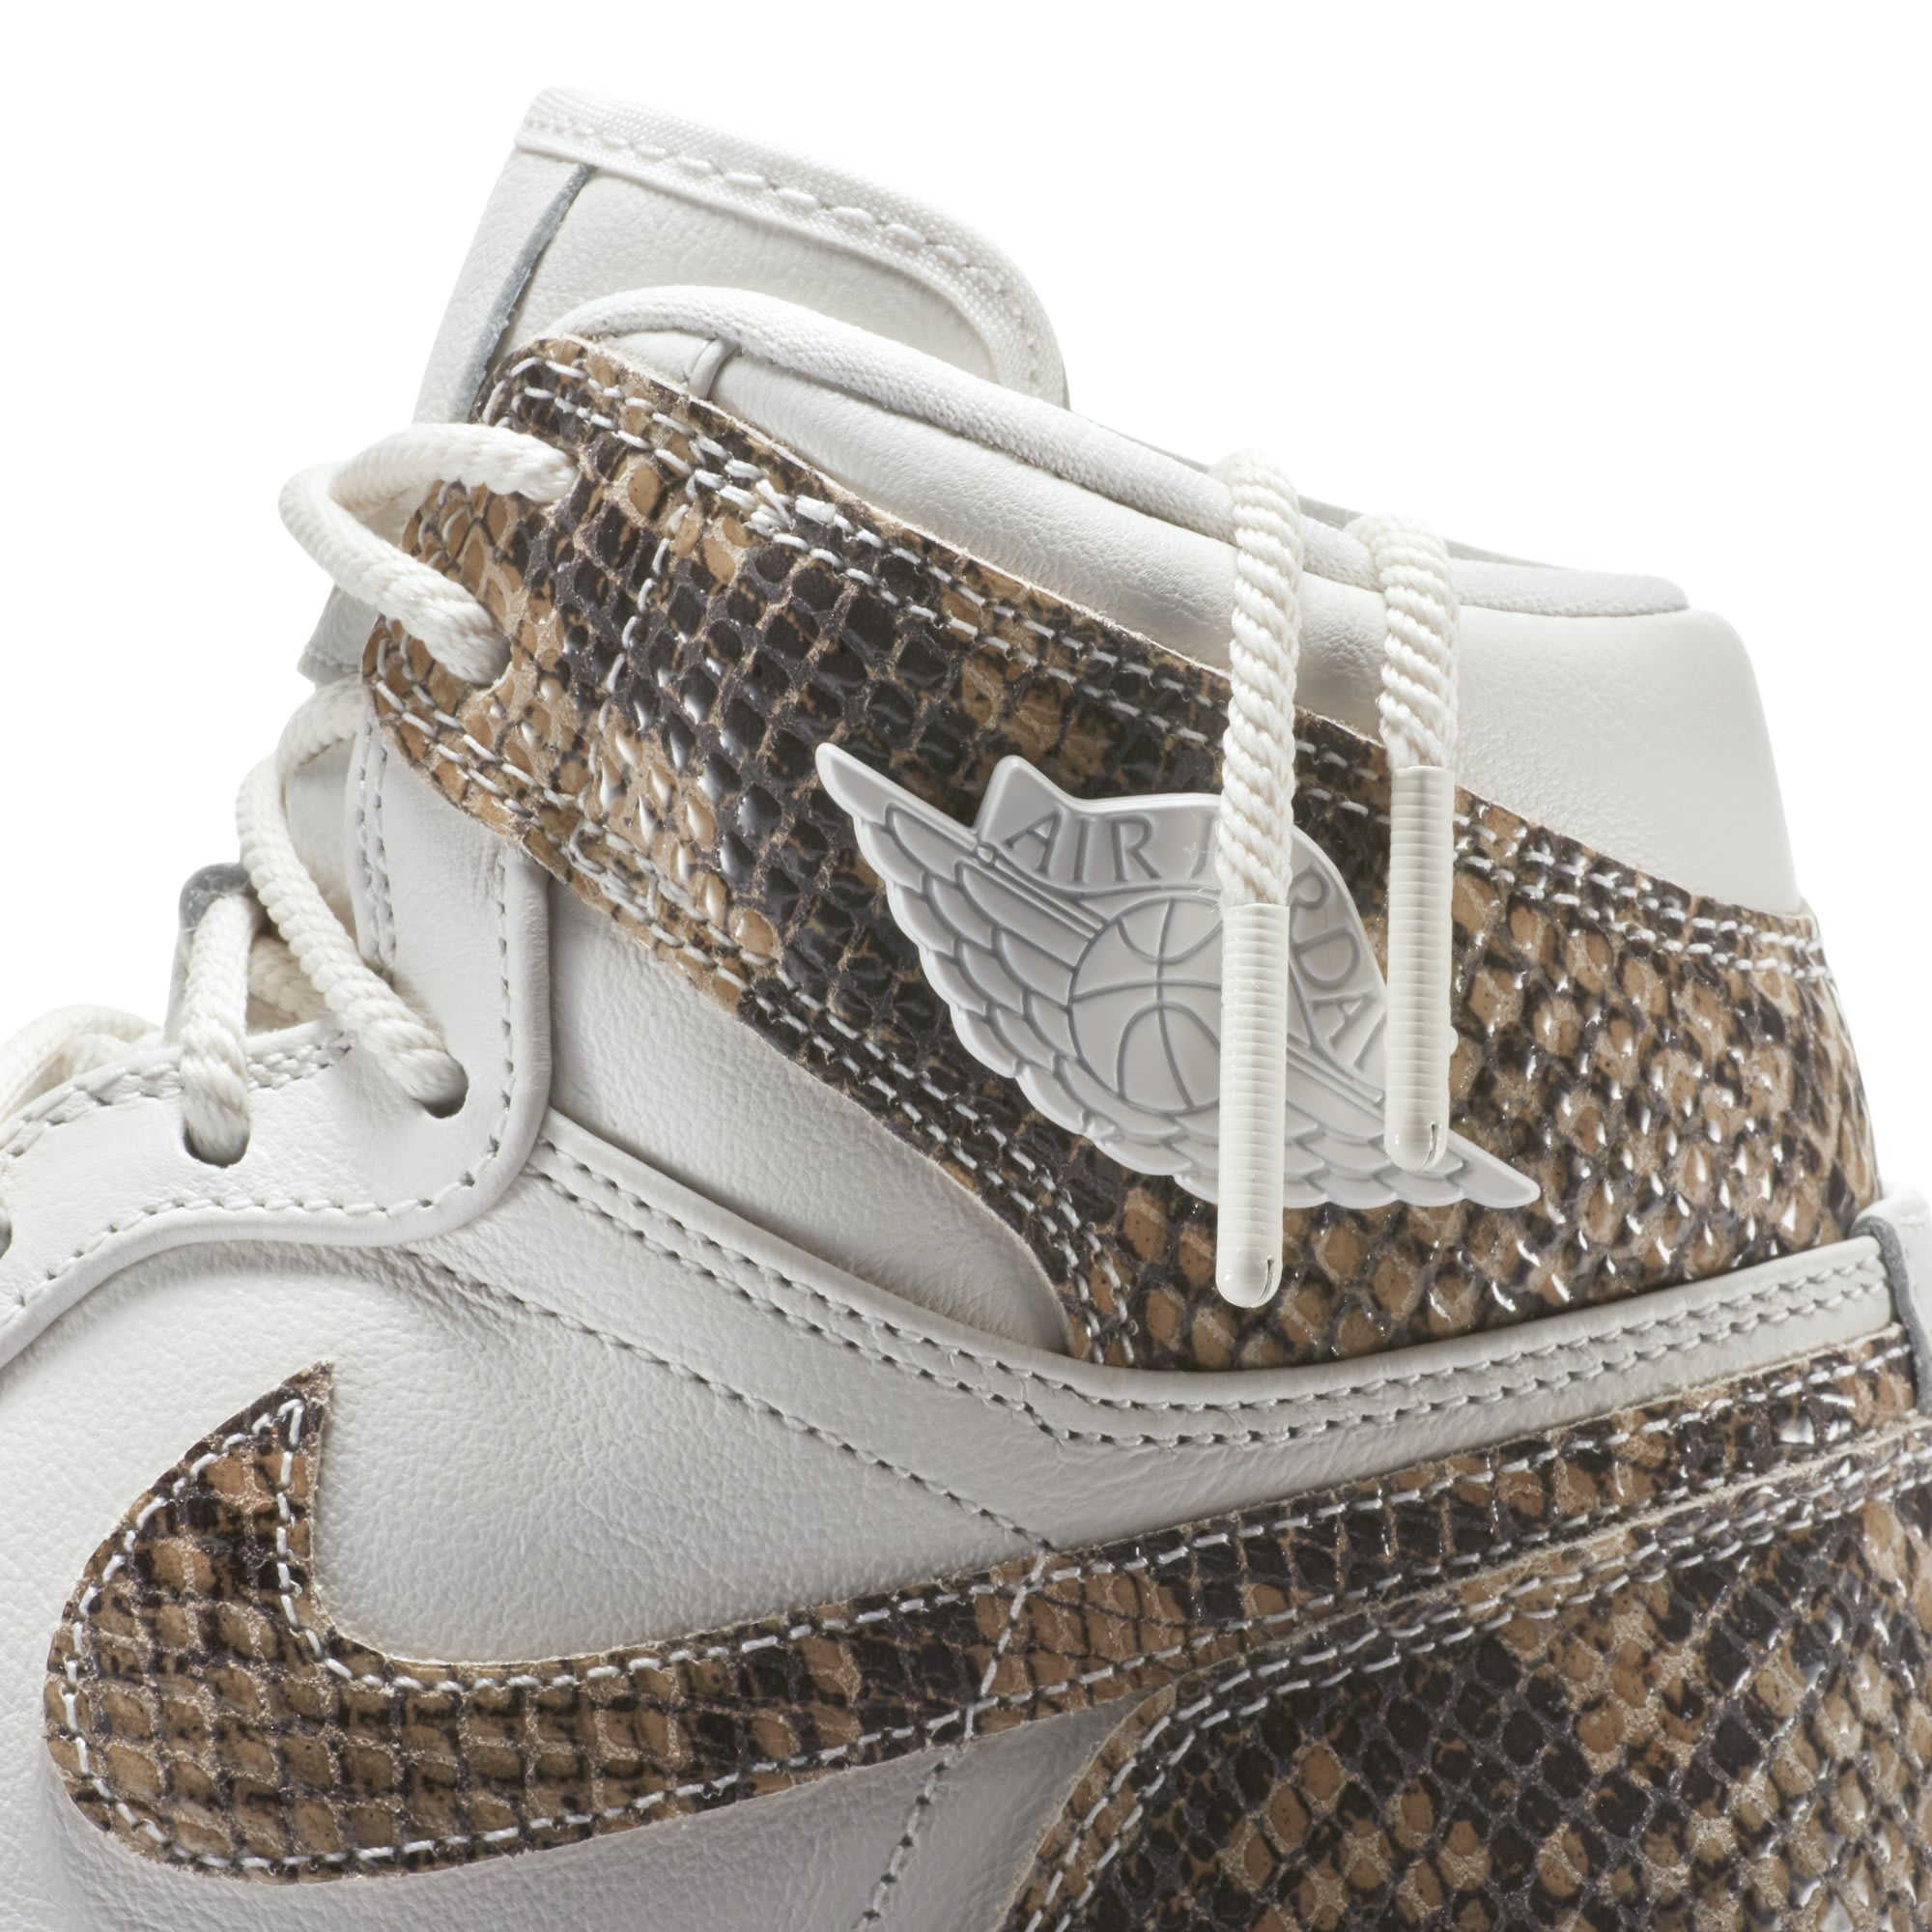 Air Jordan 1 Retro High Premium Women's Snake 'Phantom/White' AH7389-004 (Detail)